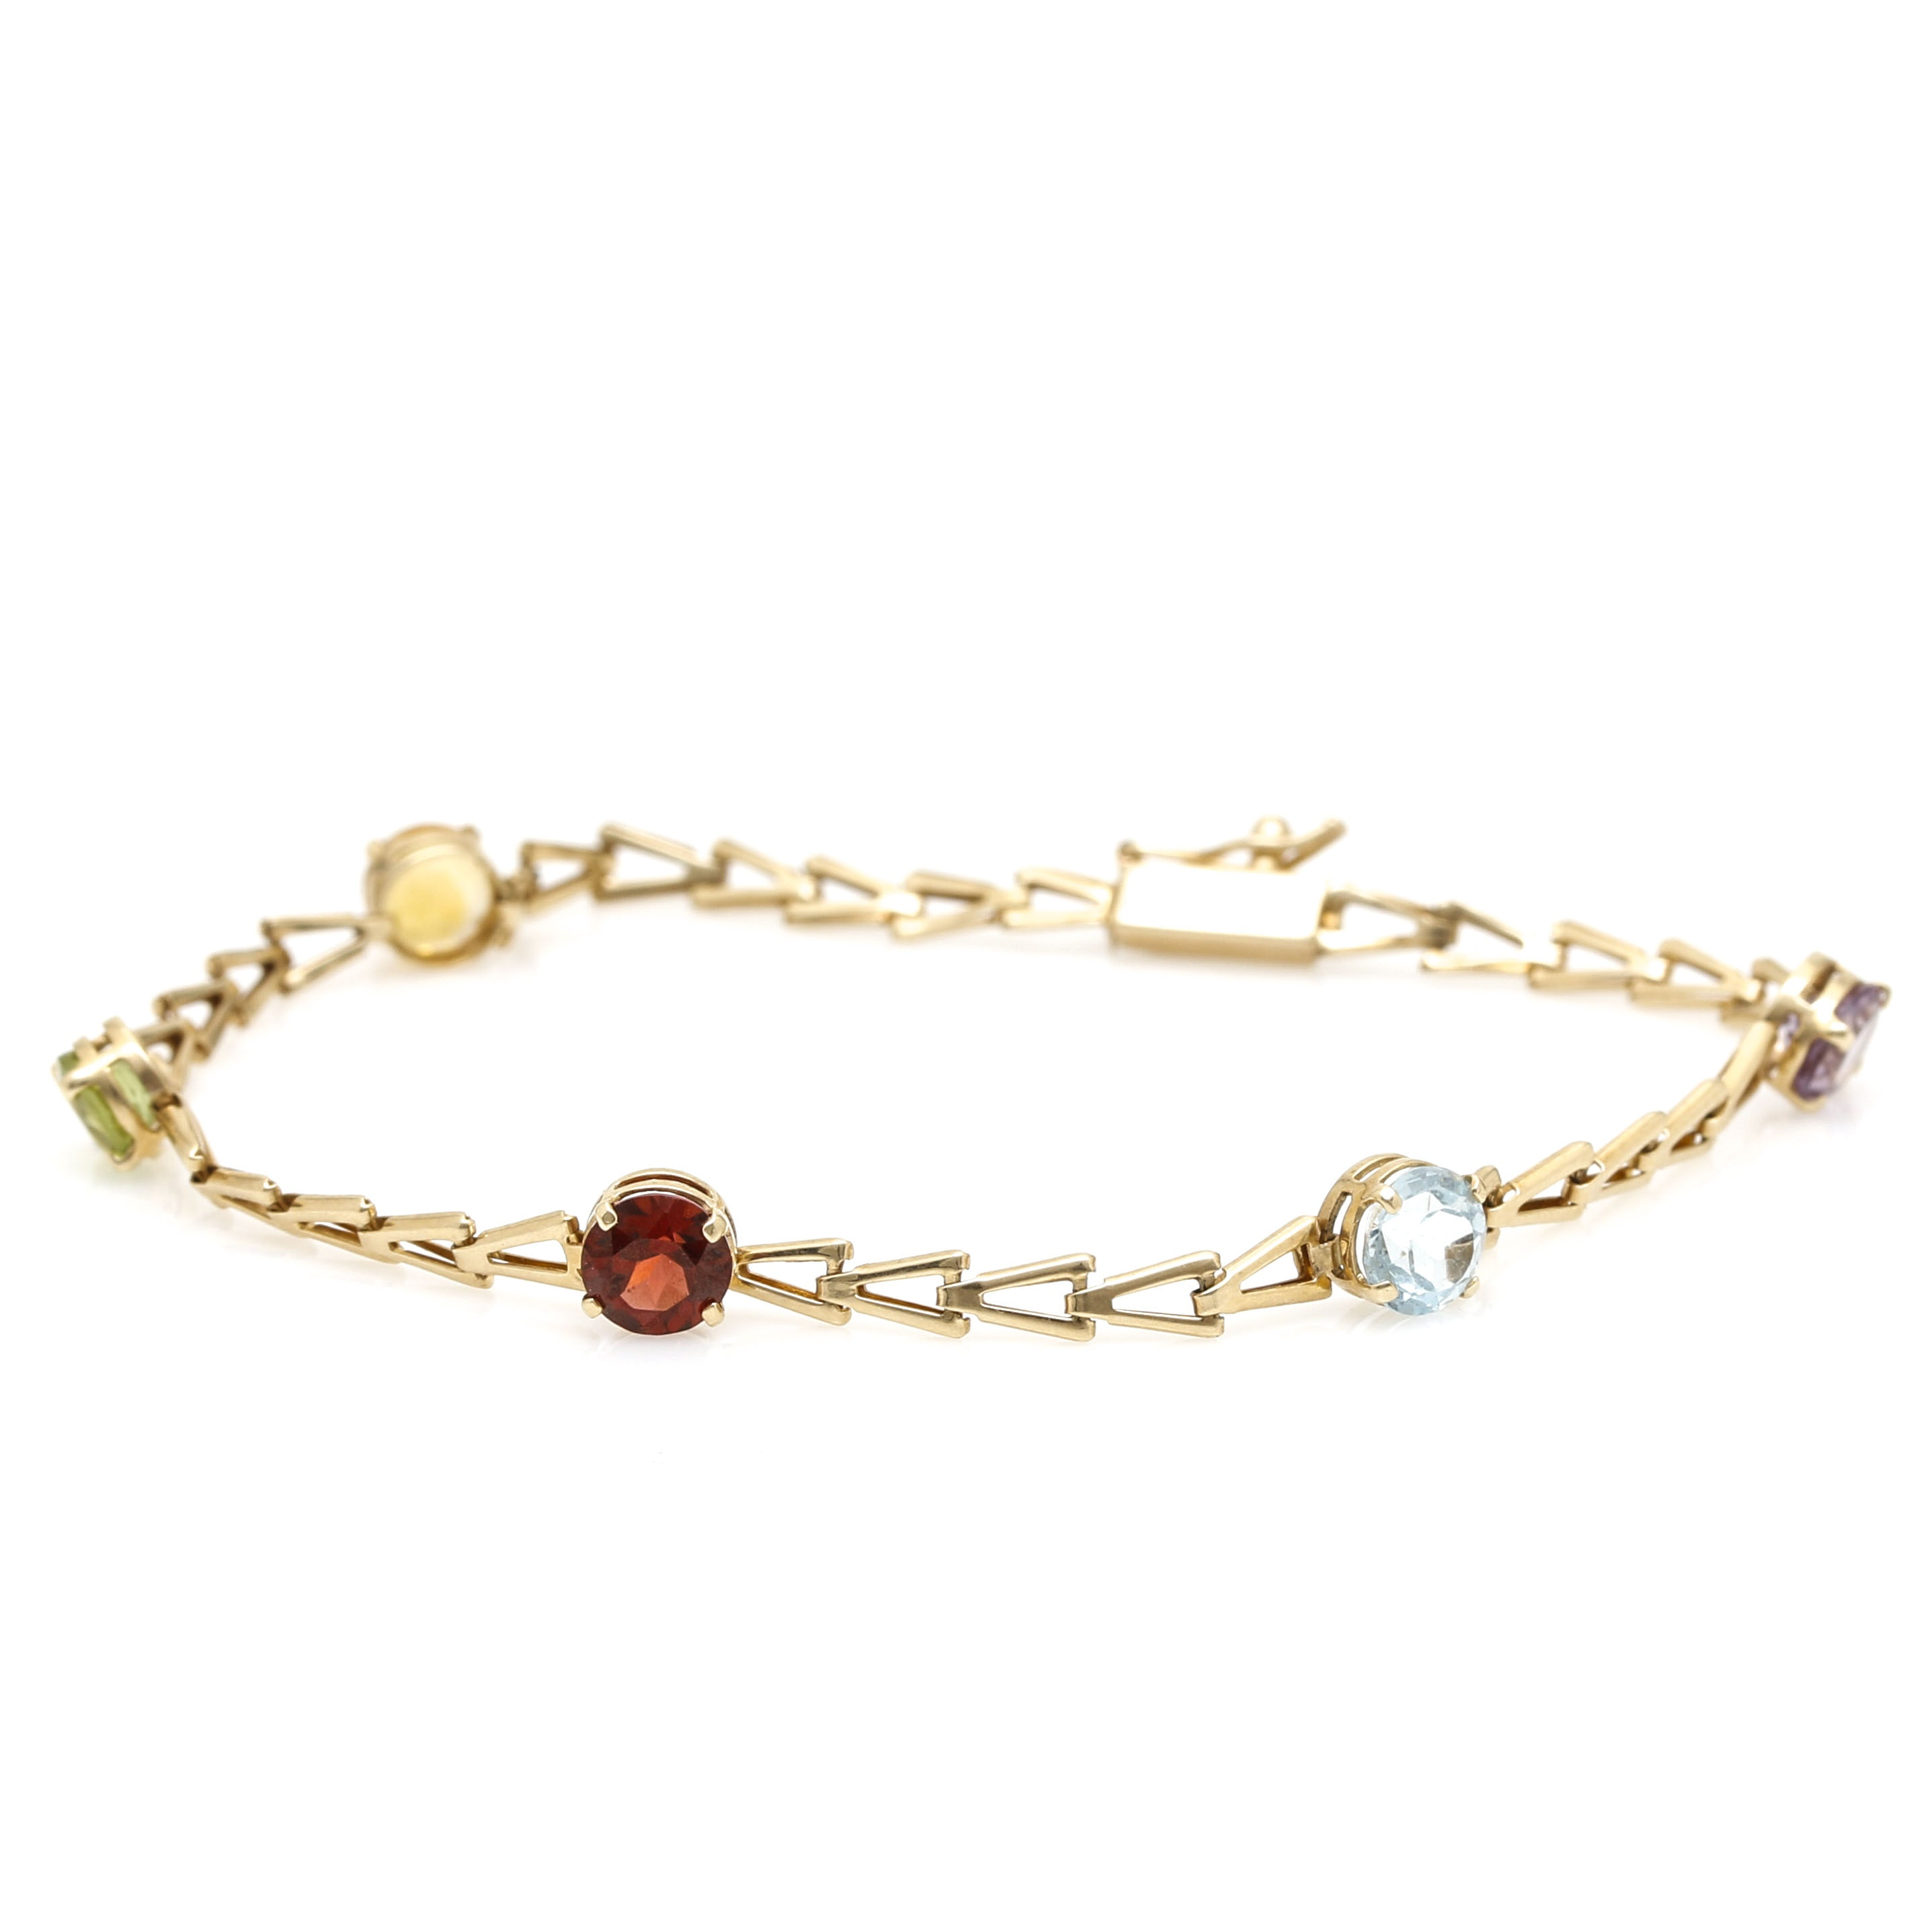 14K Yellow Gold Fancy Link Bracelet with Assorted Gemstones including Garnet